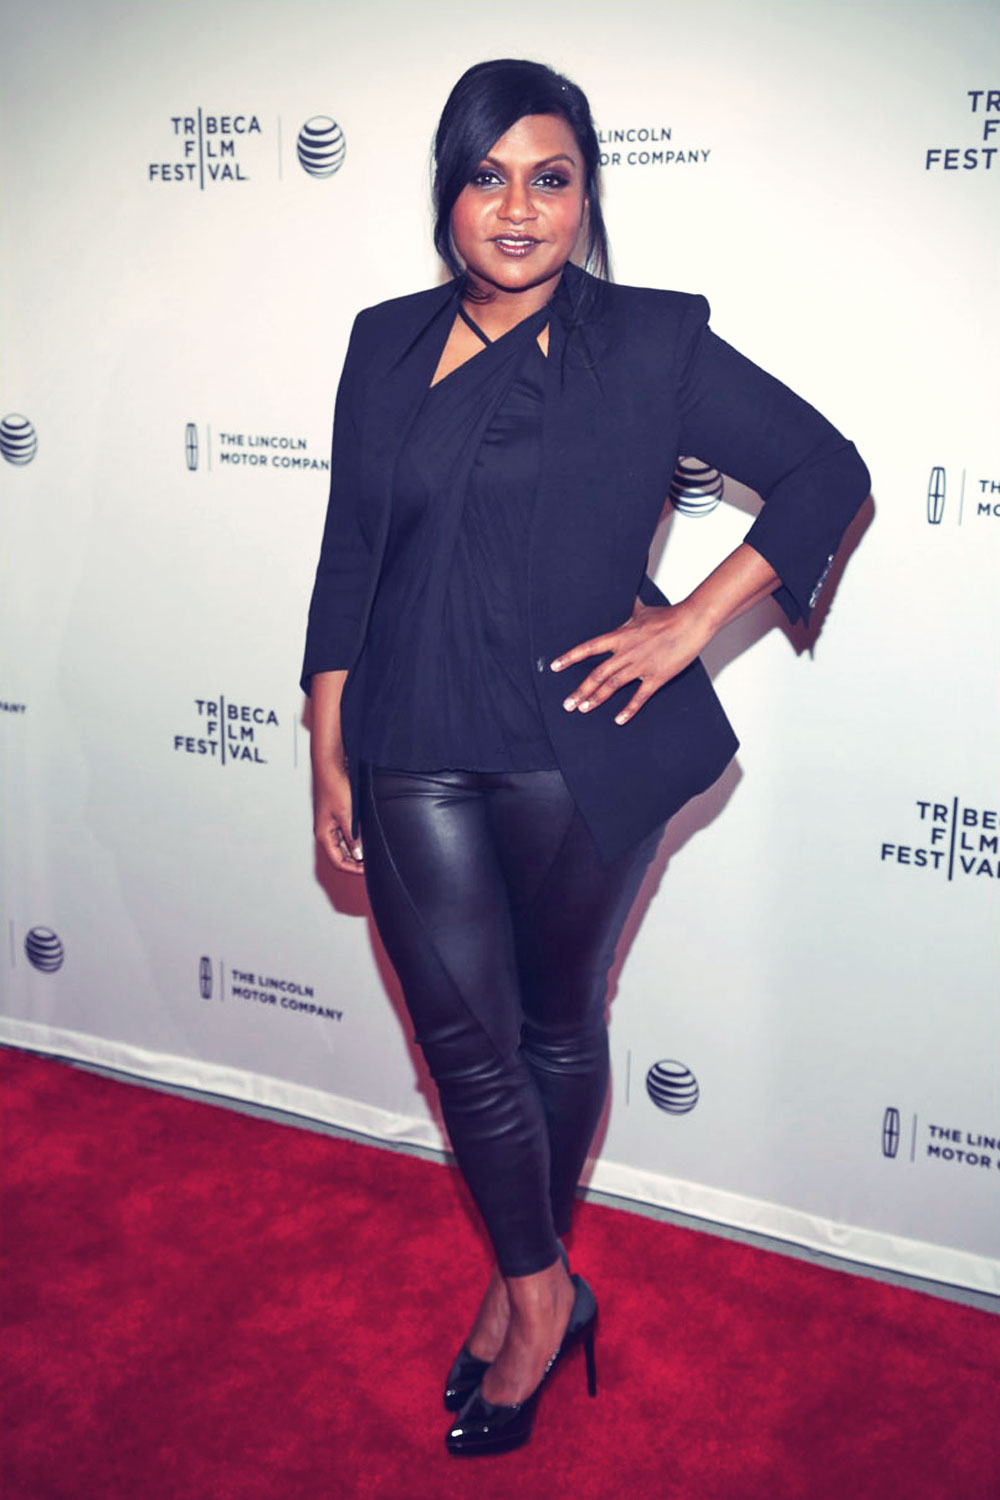 Mindy Kaling attends the premiere Alex of Venice